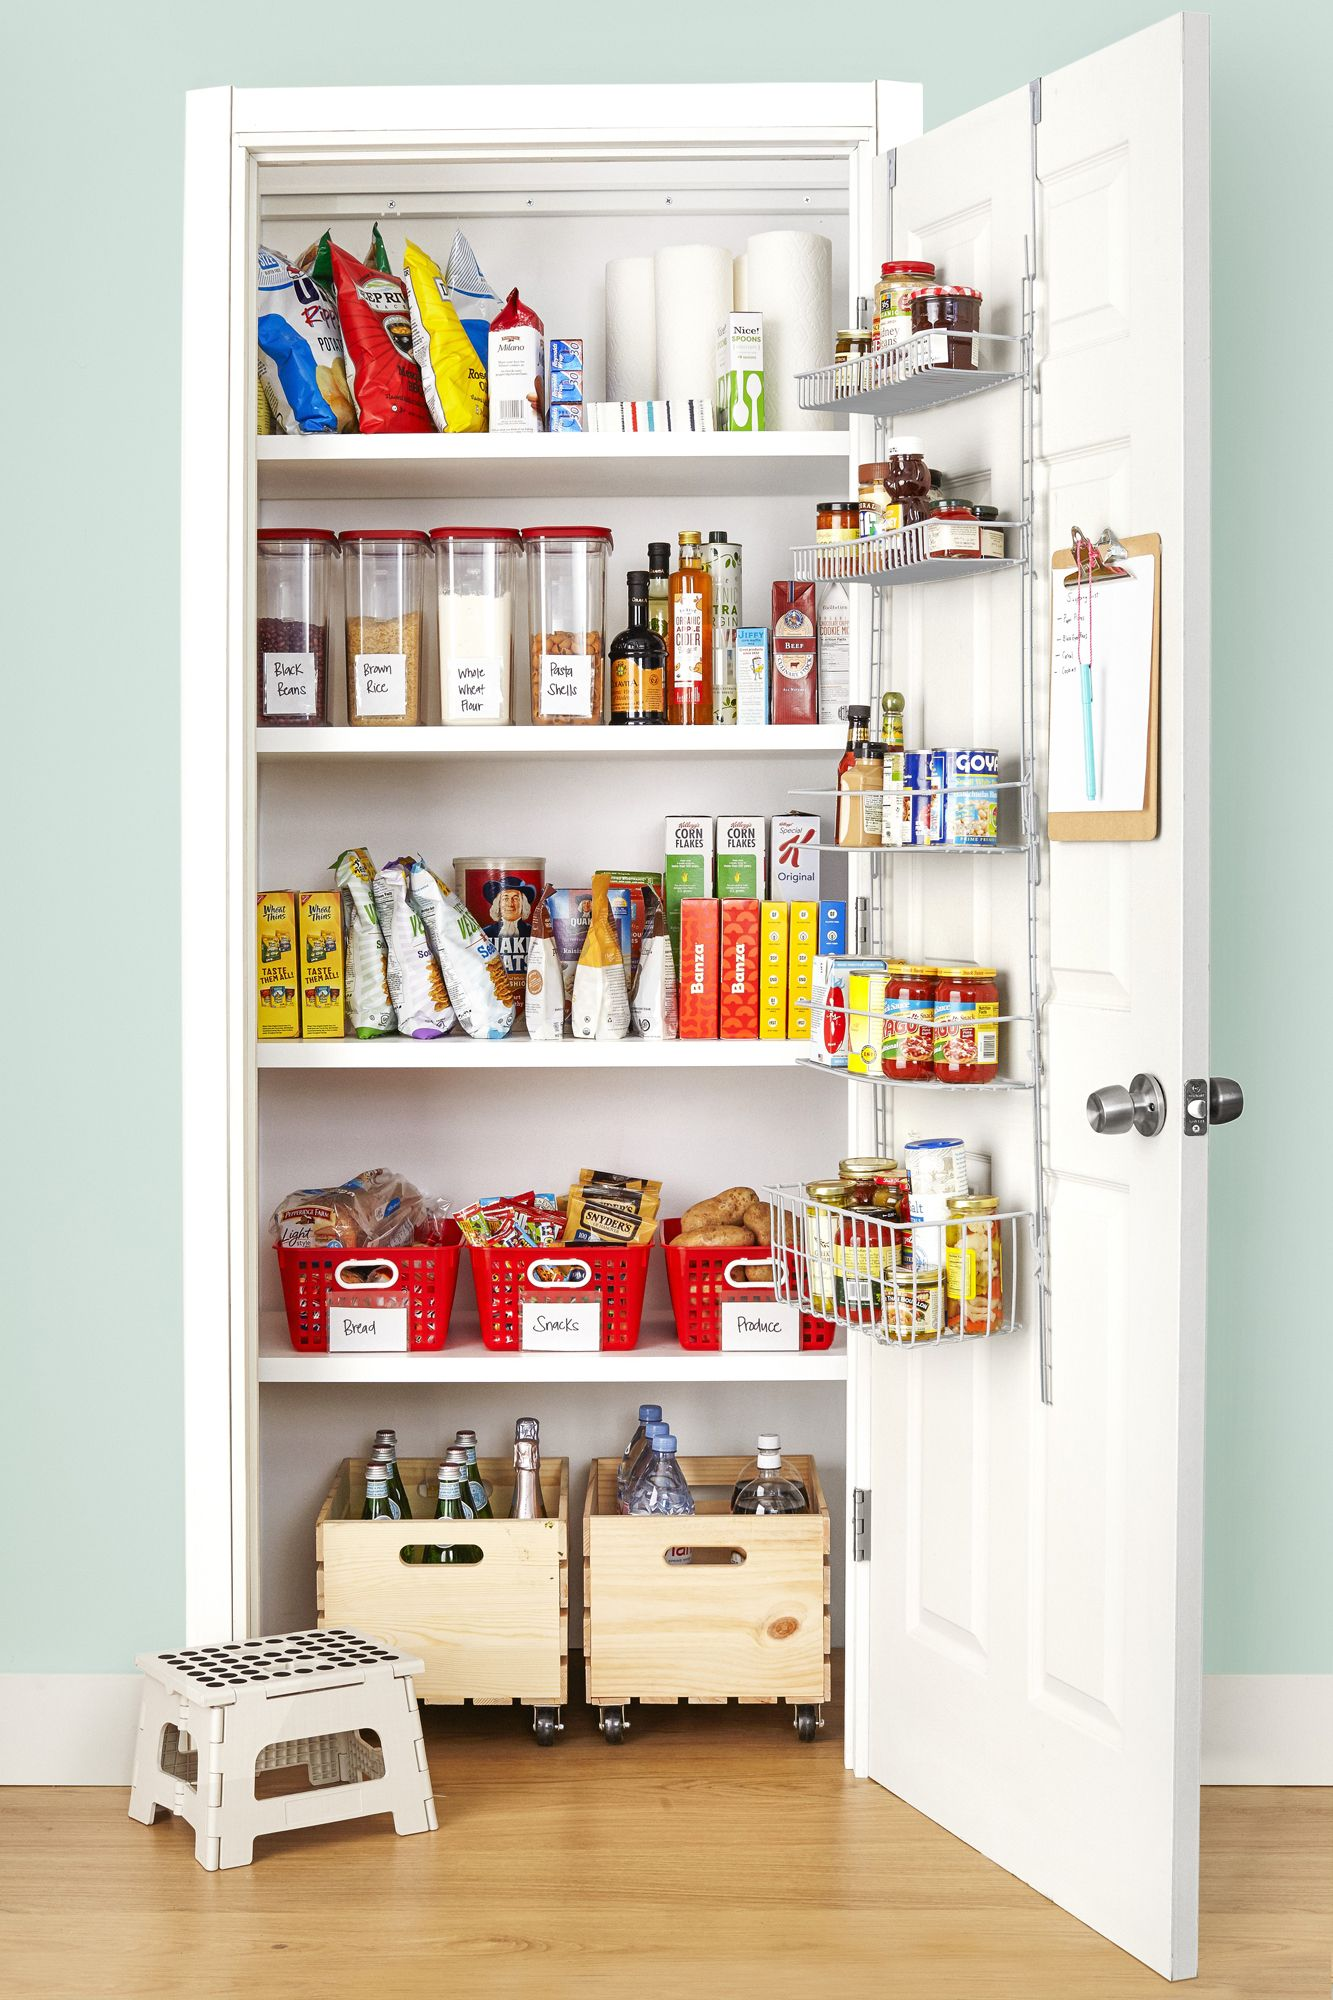 22 Kitchen Organization Ideas - Kitchen Organizing Tips and ... on handmade gifts for kitchen, organization ideas for entryway, organization ideas for work, organization ideas for desk, organization ideas for house, organization ideas for books, diy for kitchen, organization ideas for dishes, organization ideas for shoes, organization ideas for jewelry, organization ideas for closet, organization ideas home, organization ideas bathroom, embroidery for kitchen, colors for kitchen, organization ideas garage, organization ideas for baby, organization ideas for pantry, food for kitchen, organization ideas for countertop,